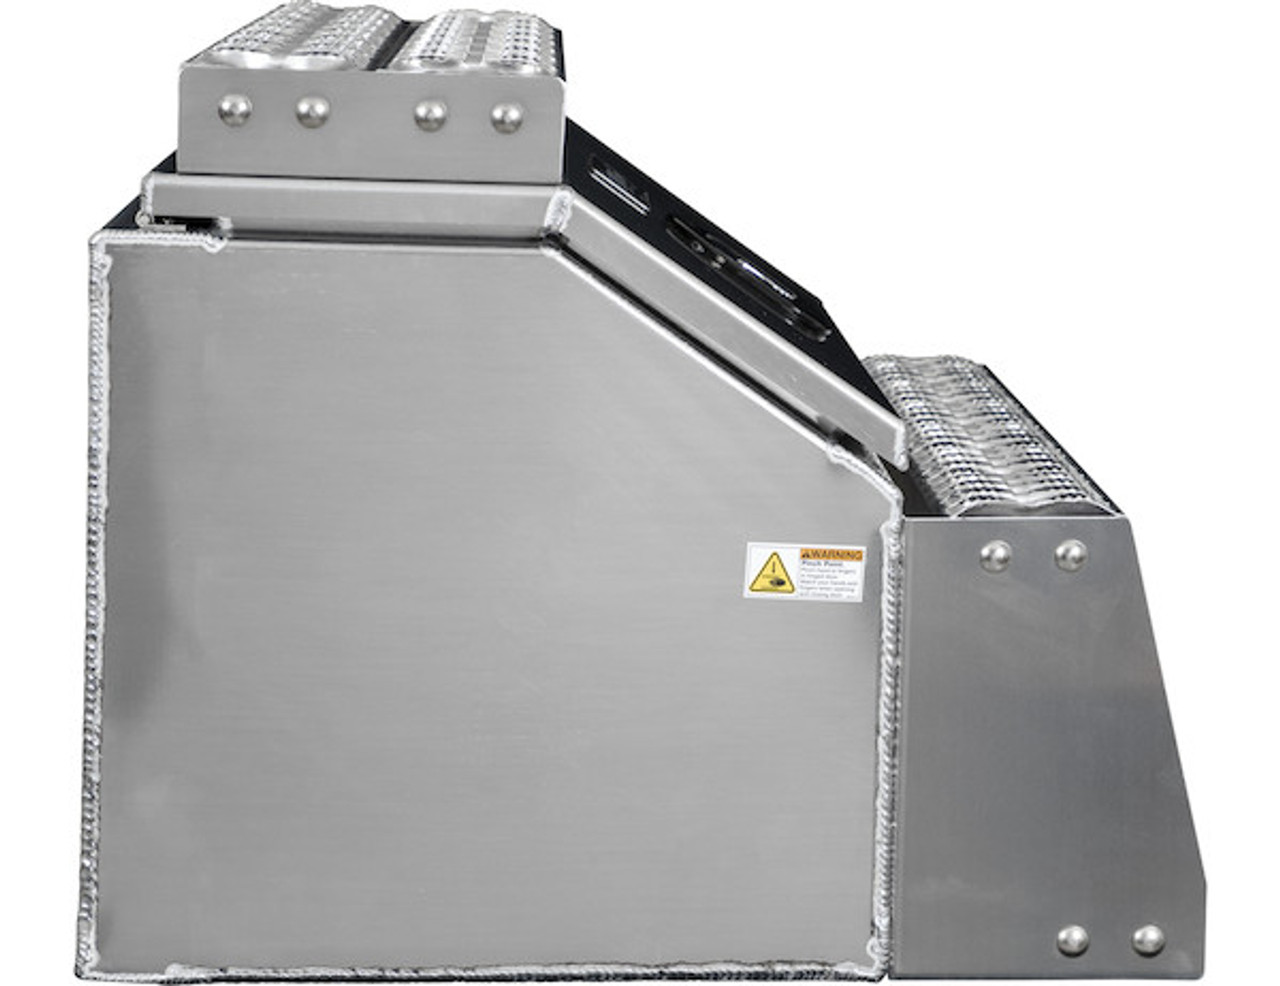 1705283 BUYERS PRODUCTS WideOpen™ Class 8 Step Tool Box For Semi Trucks - 30 Inch Width 6